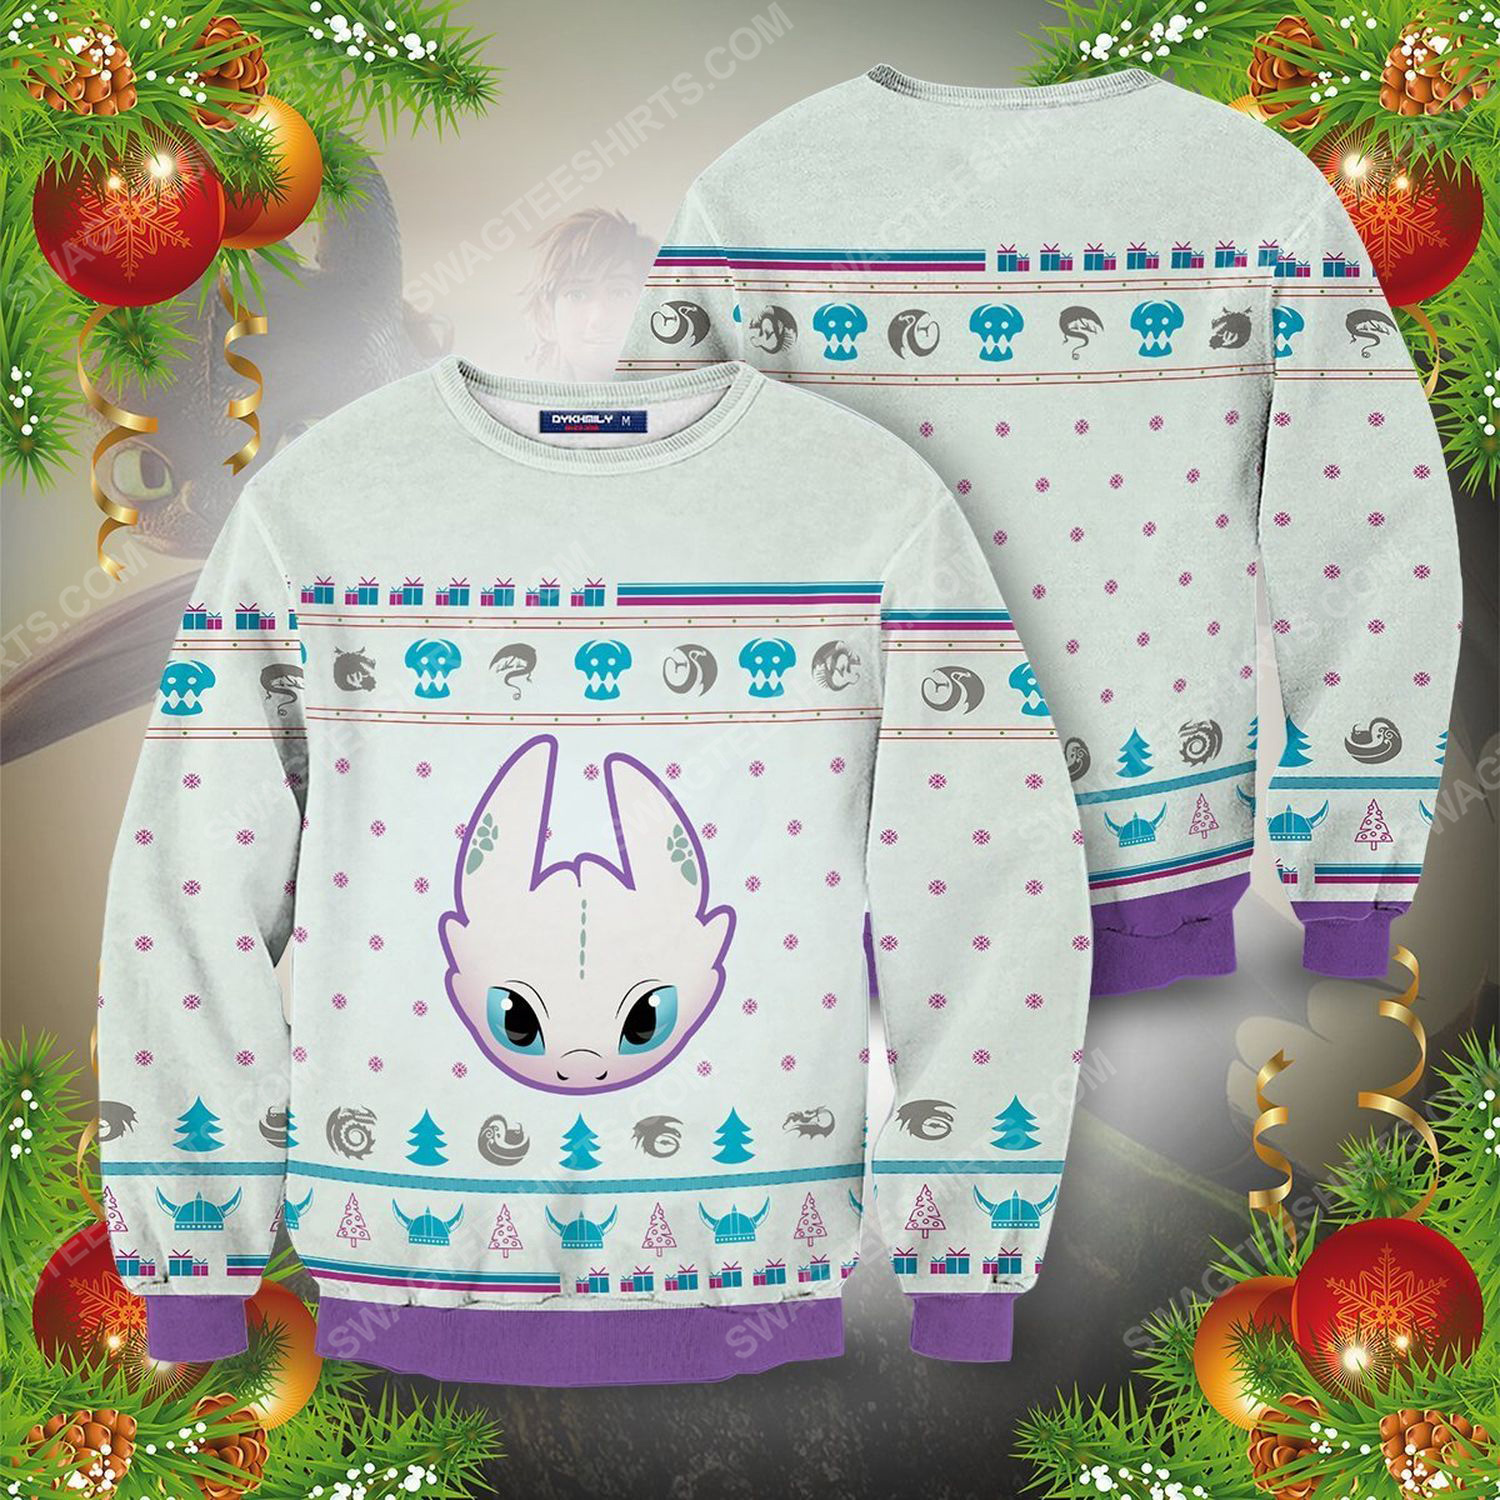 Light fury how to train your dragon ugly christmas sweater 1